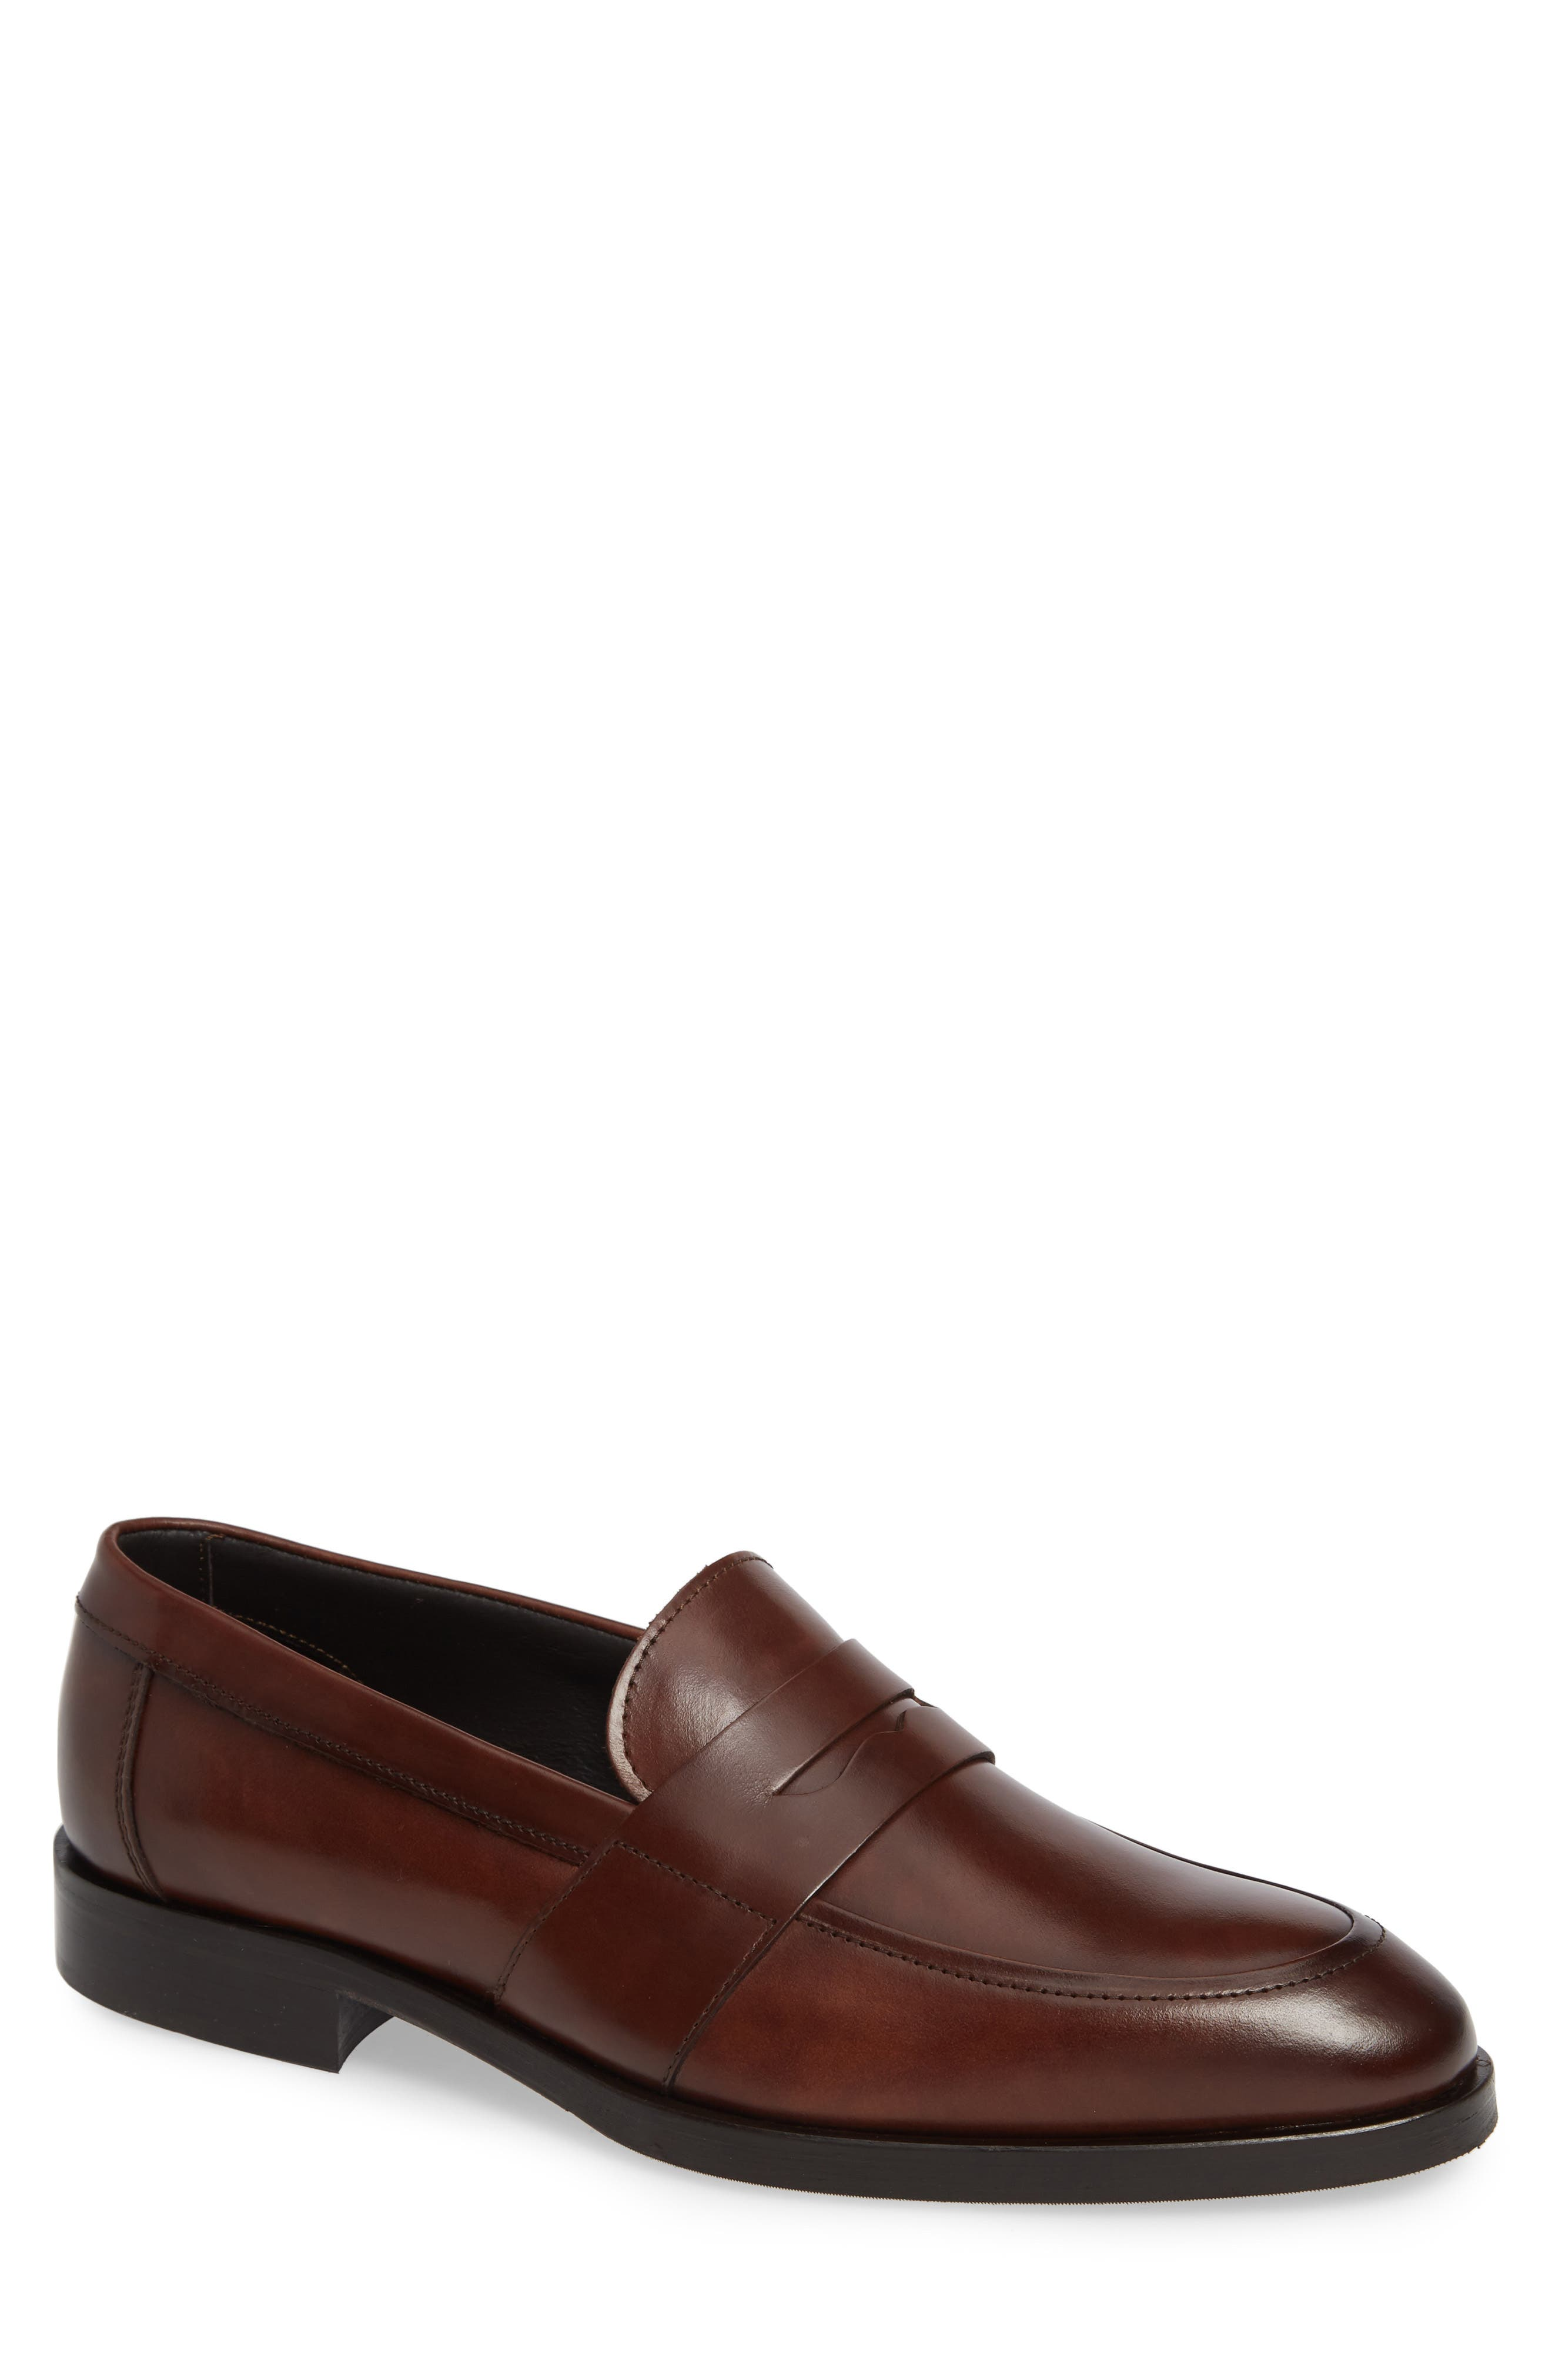 Devries Penny Loafer,                         Main,                         color, VITELLO BRUCIATO LEATHER